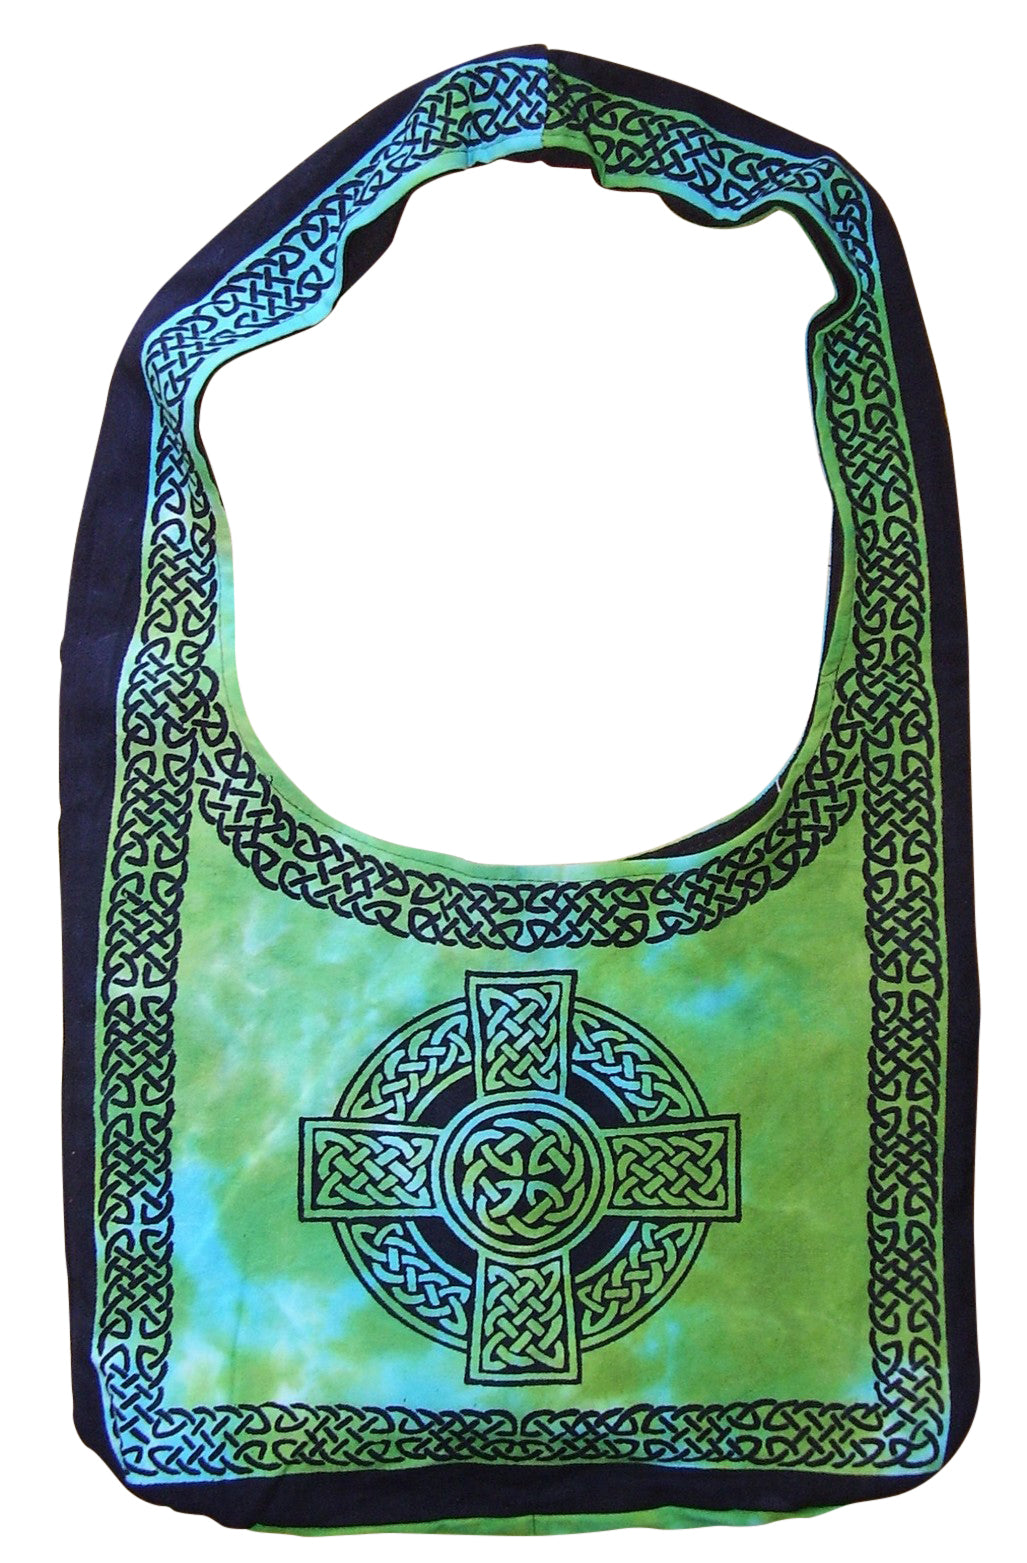 Cotton Celtic Hobo Bag Flat Bottom 15 x 12 Tie Dye